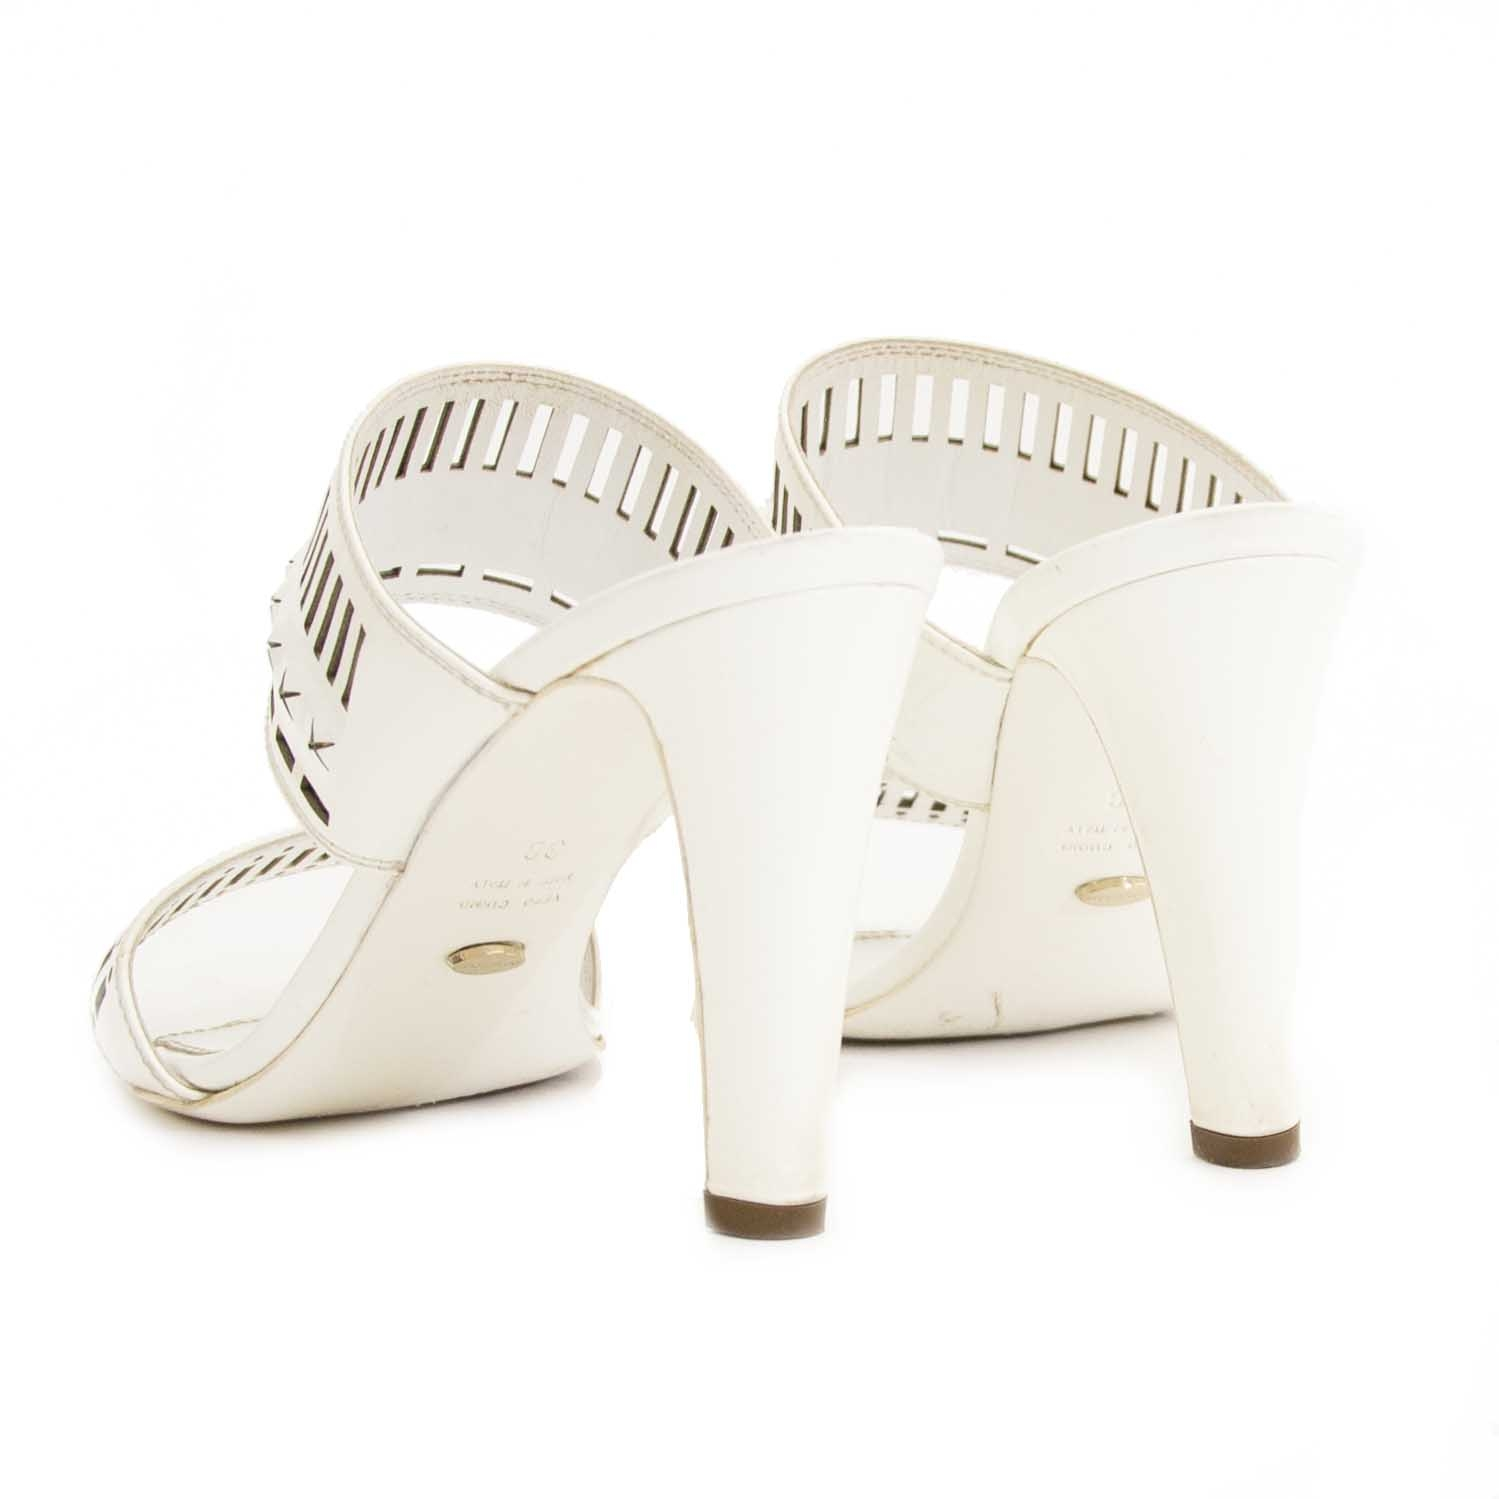 Sergio Rossi White Sandal Heels - Size 38